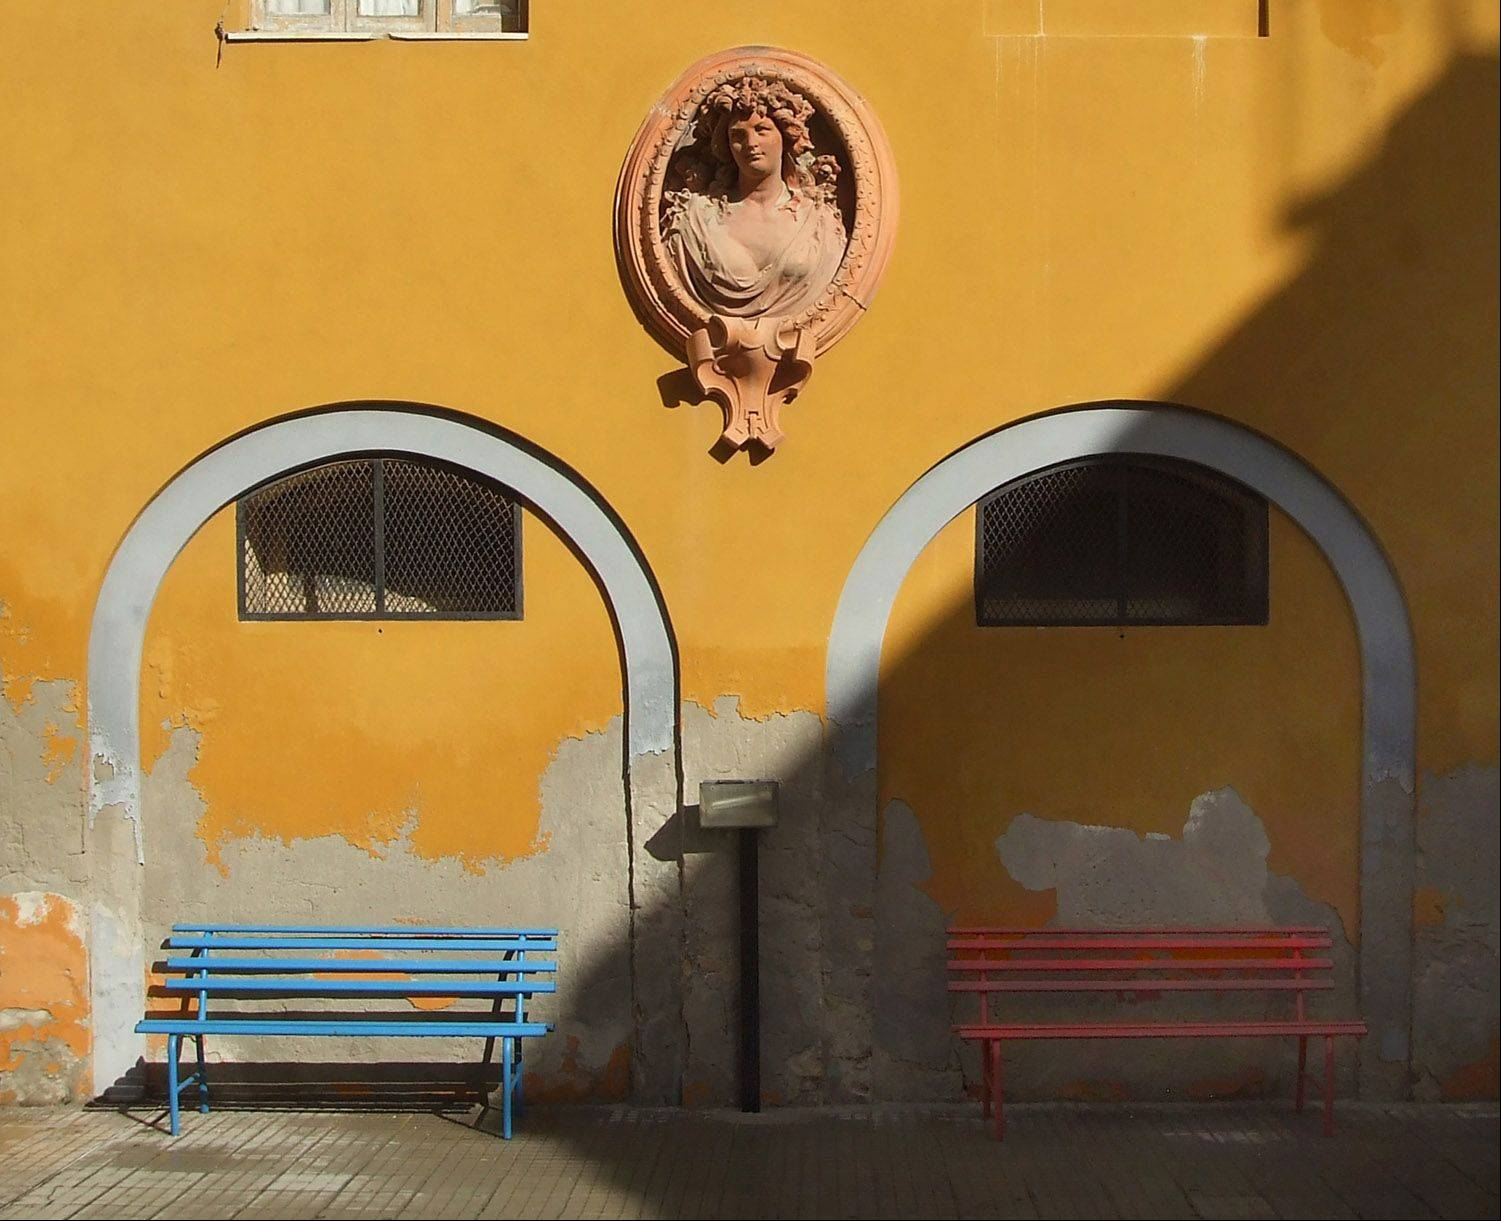 A beautiful terra cotta sculpture of a woman guards a brightly painted courtyard in Cagliari, Sardinia off the western coast of Italy on a recent cruise.